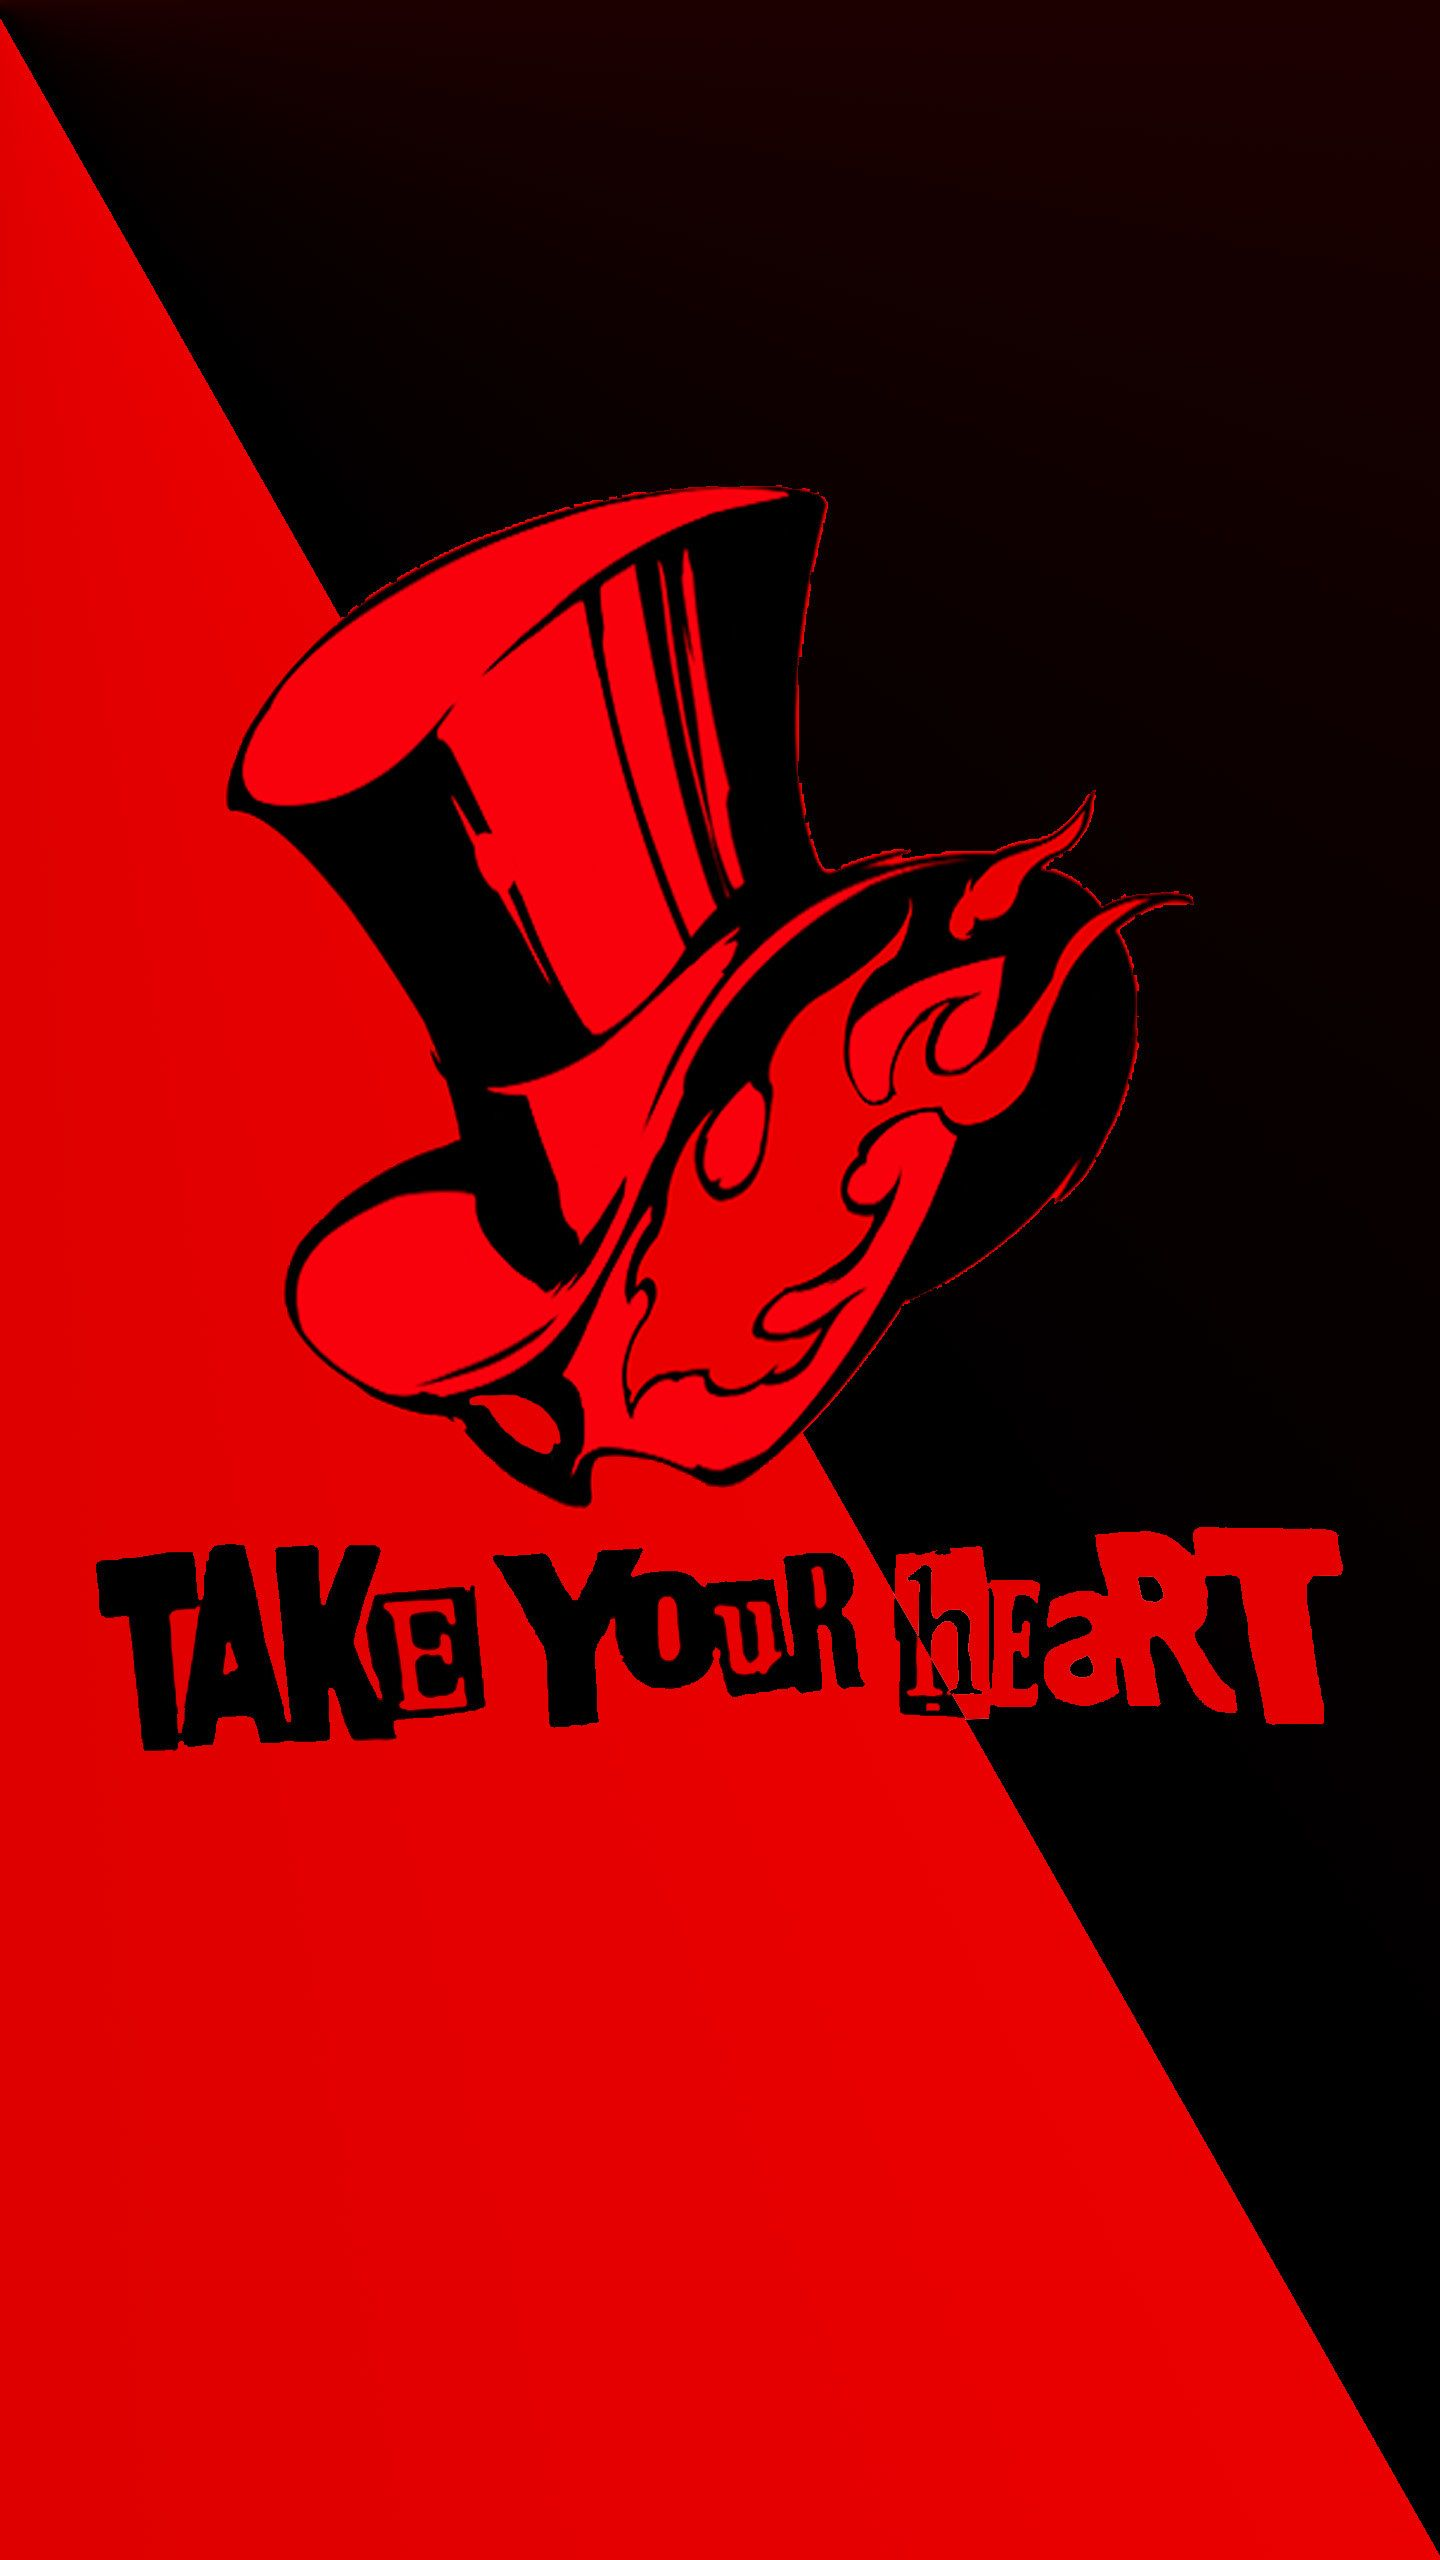 1440x2560 Persona 5 Hd Wallpaper For Phone Persona 5 Joker Persona